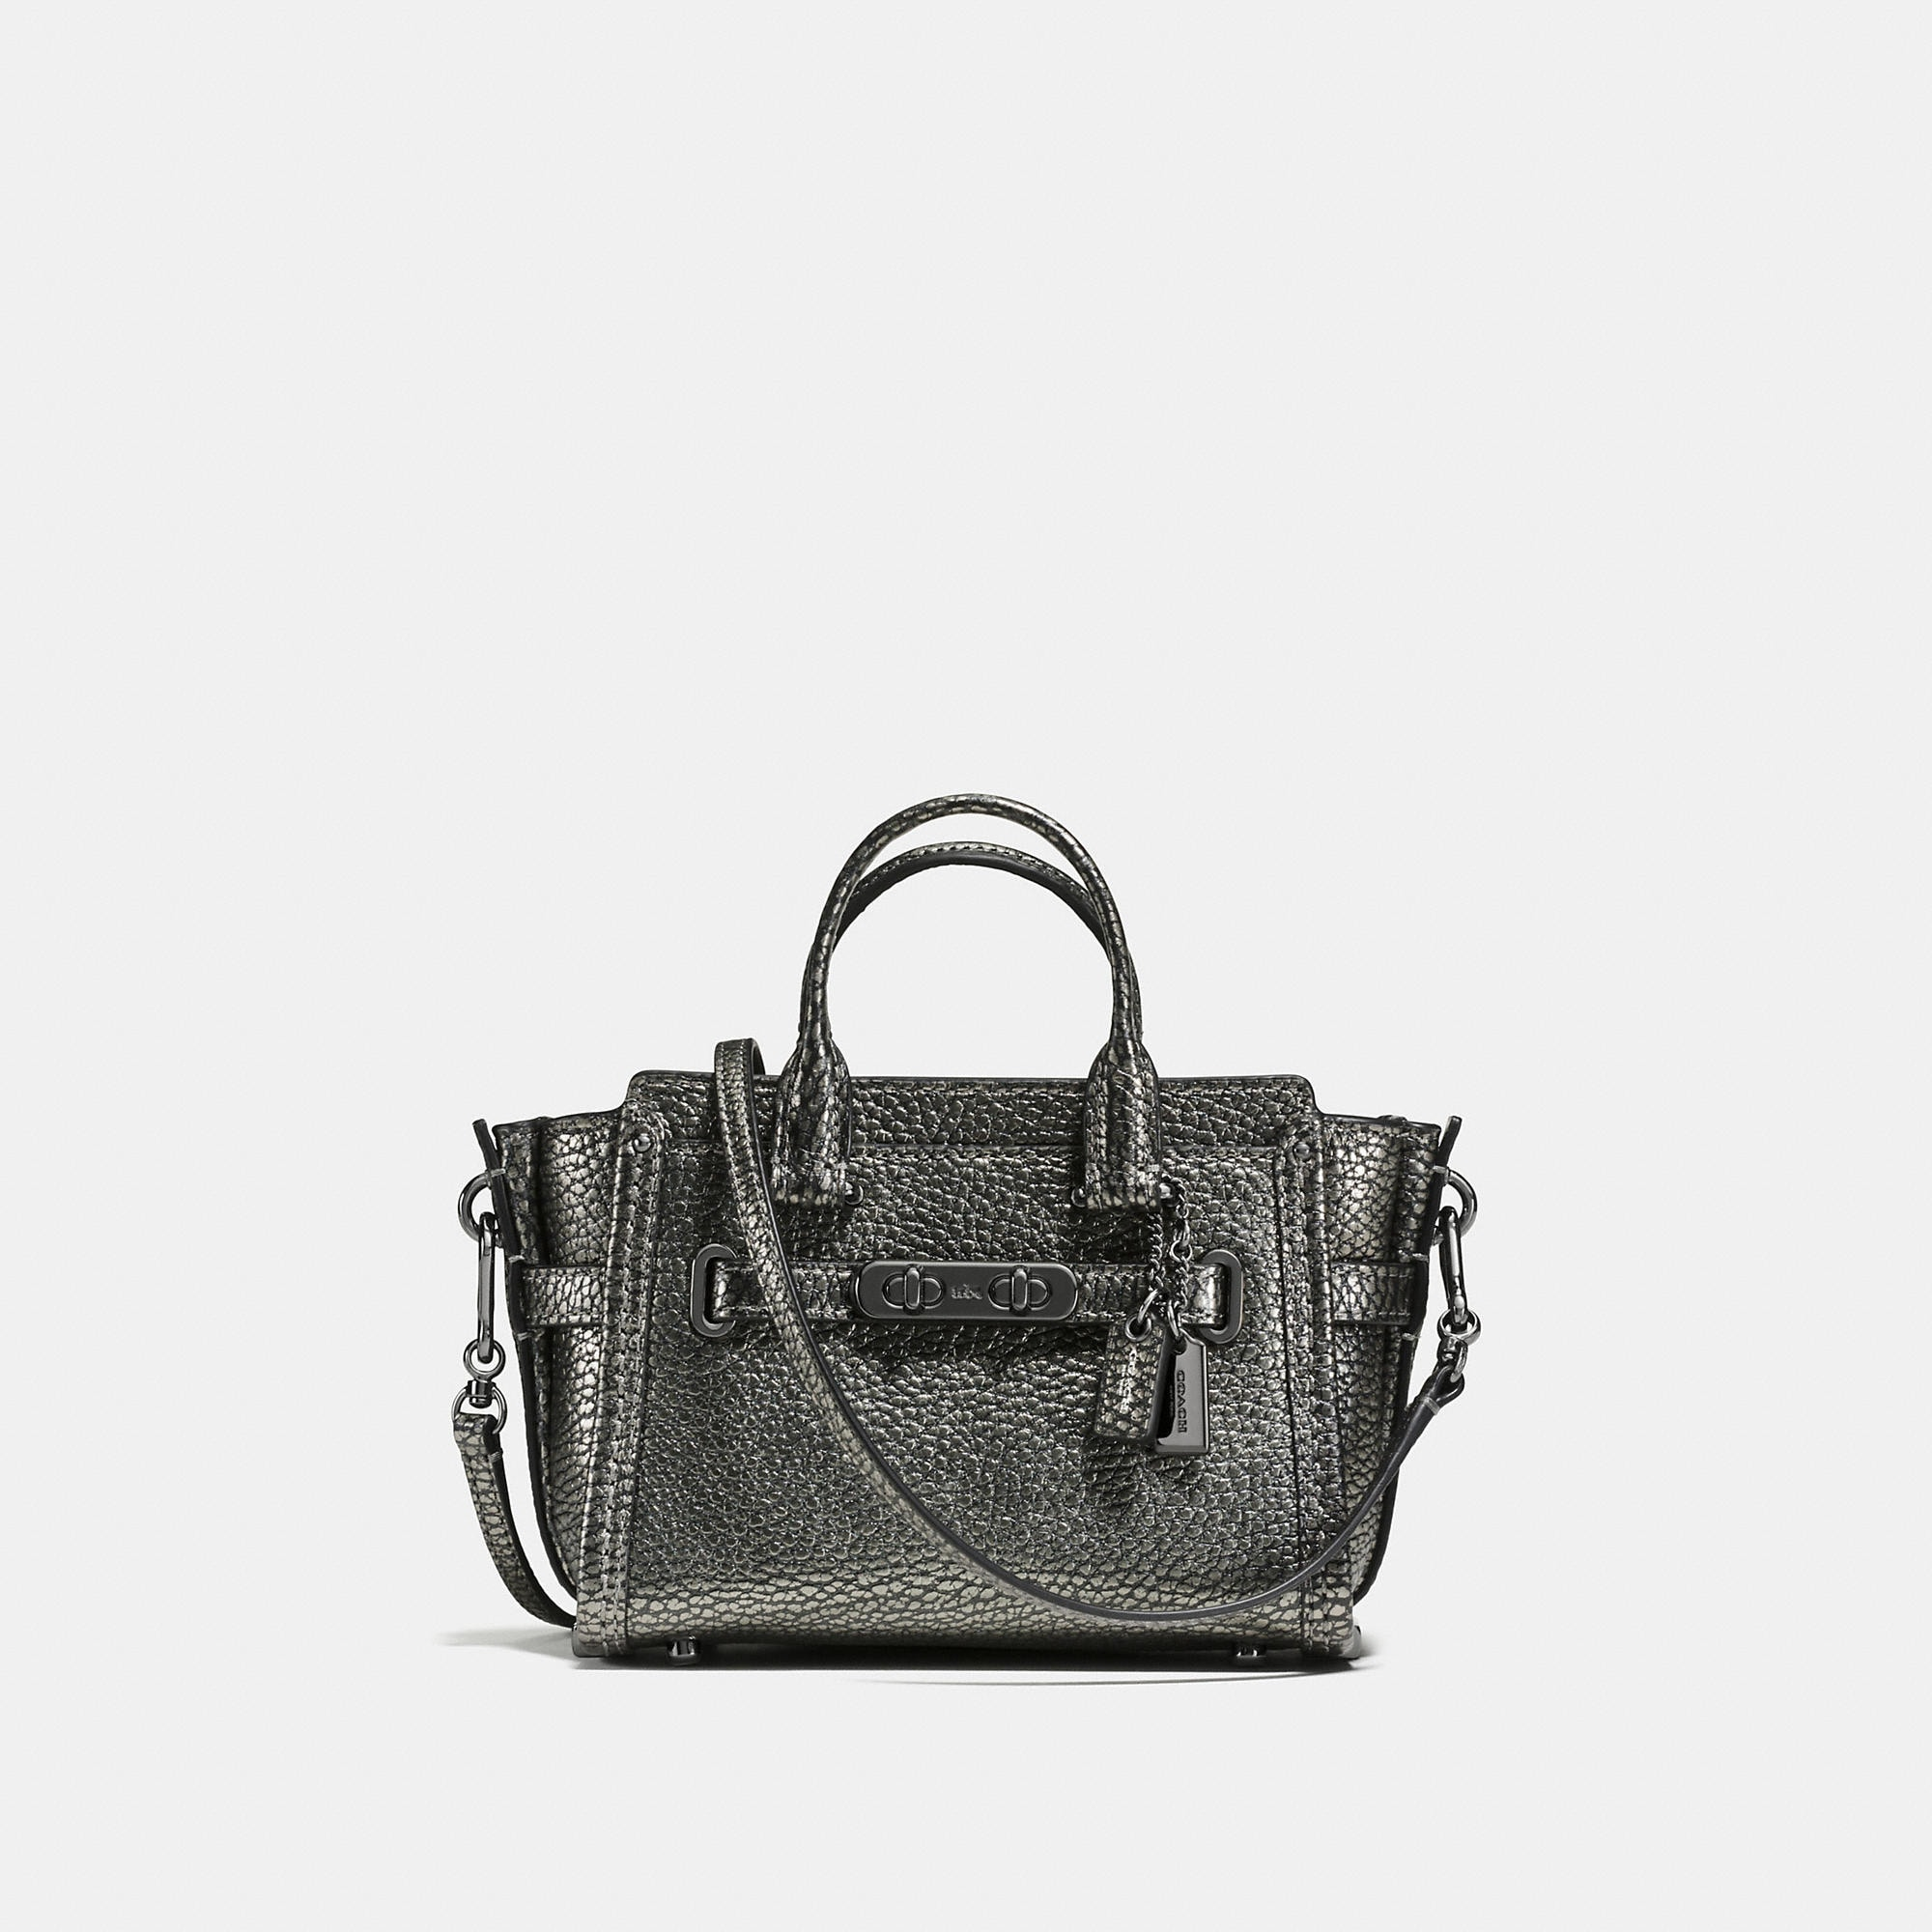 Coach Swagger 15 In Pebble Leather